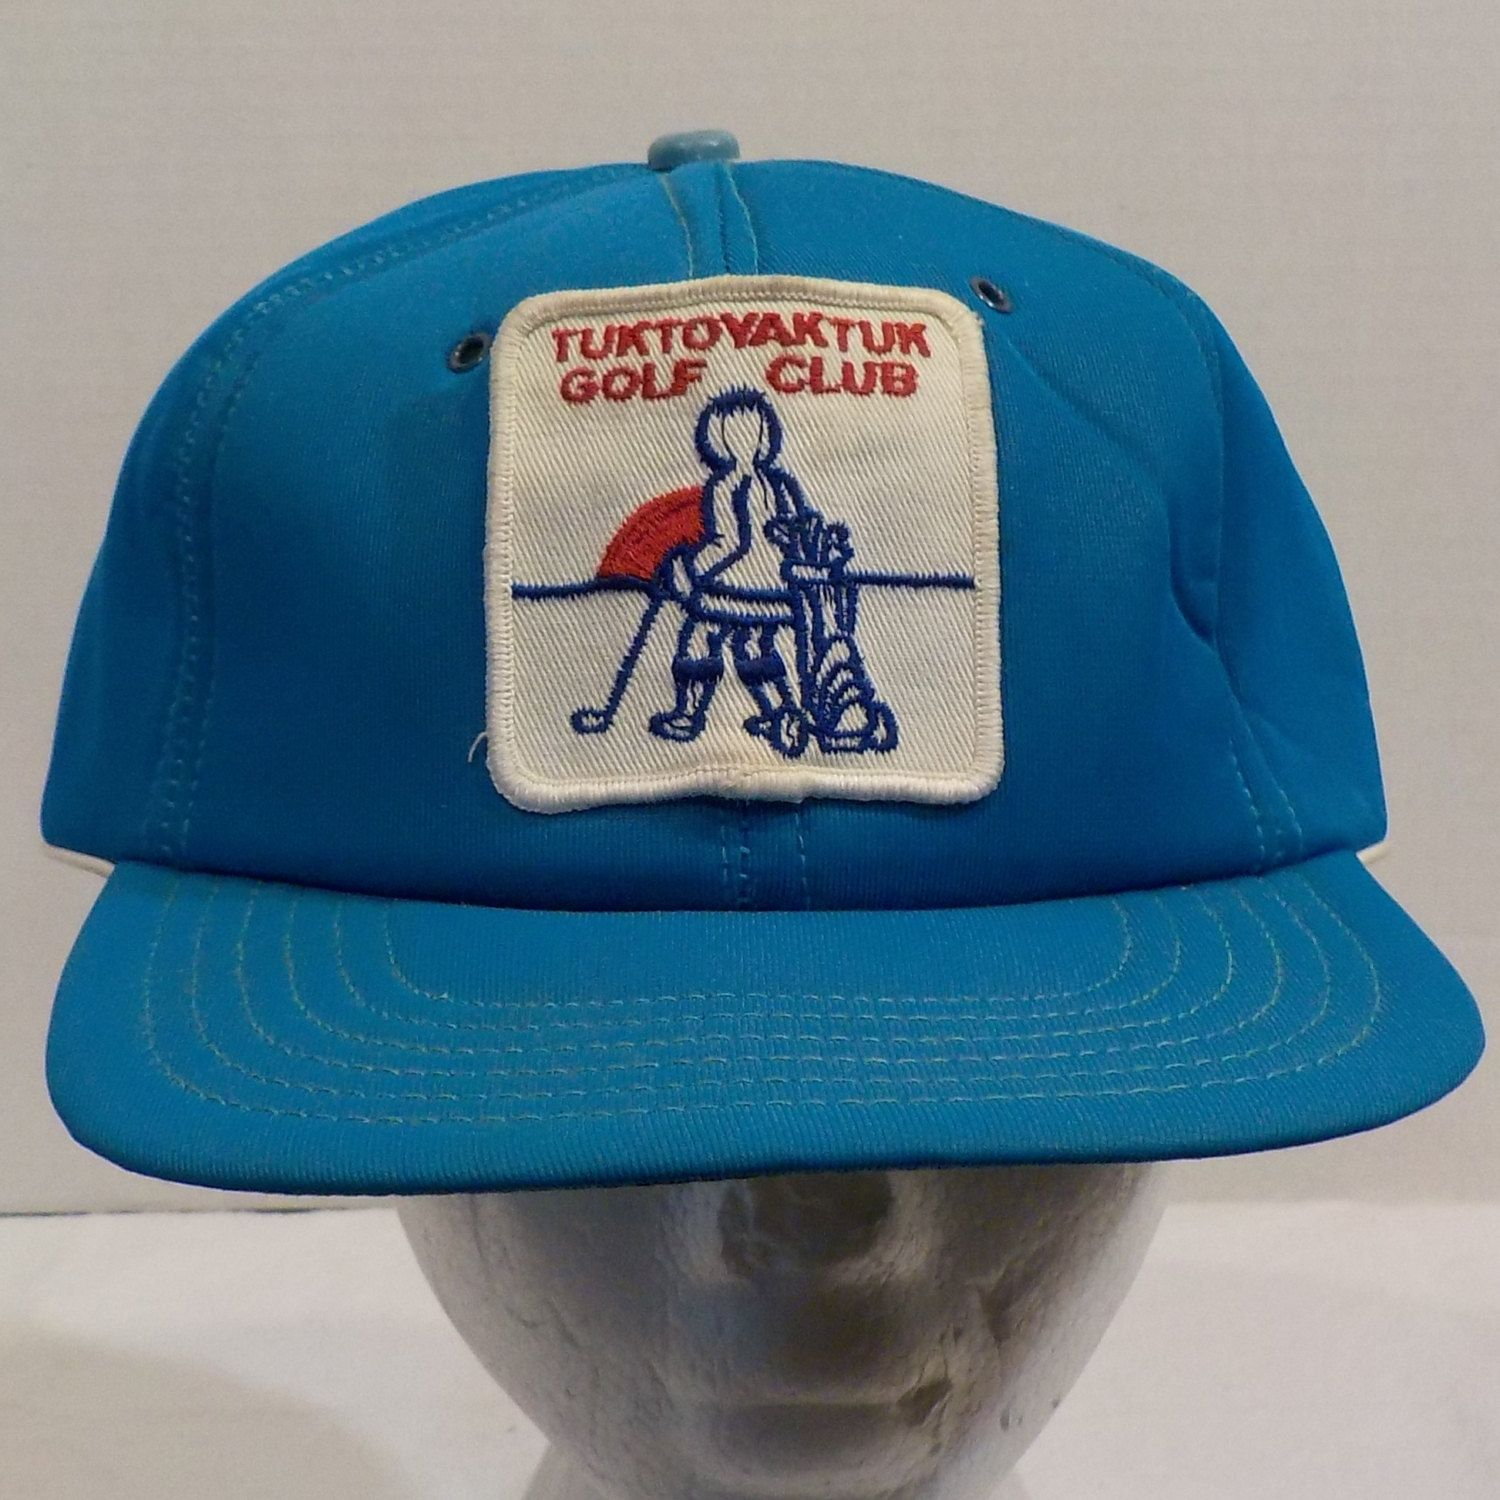 Tuktoyaktuk Golf Club Vintage Baseball Truckers Cap Hat Snap Back by  LouisandRileys on Etsy 3261d5841dc4